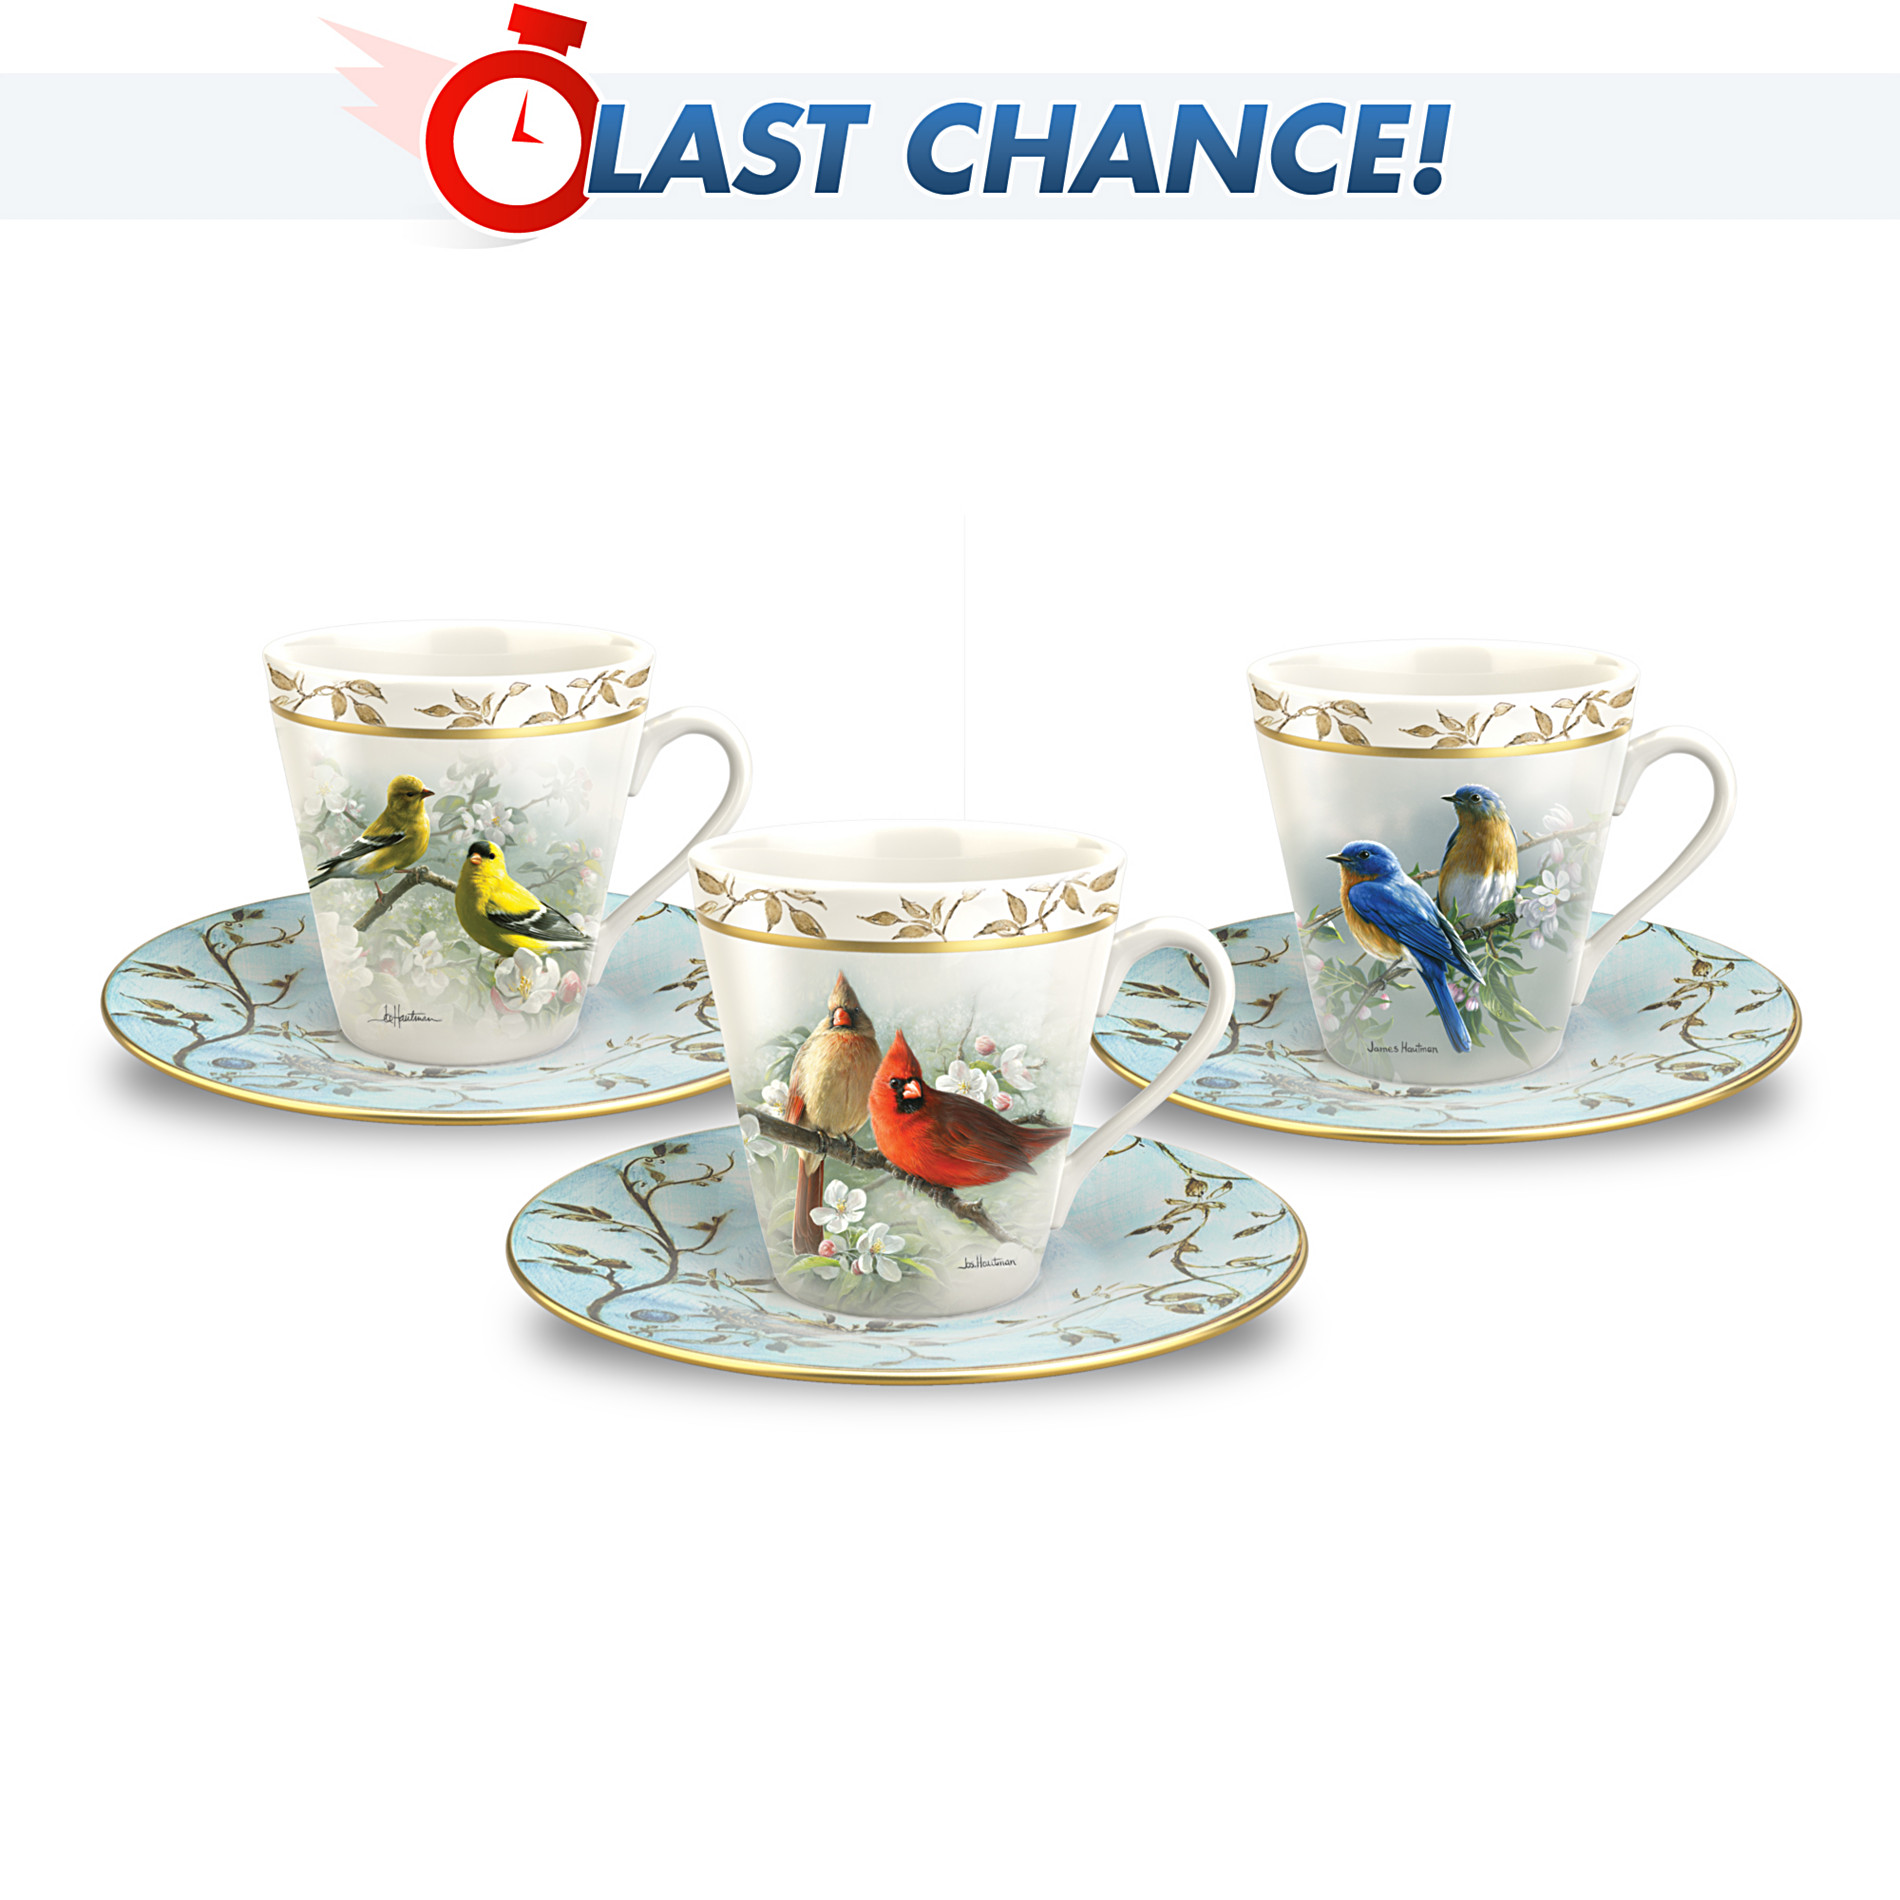 The Bradford Exchange Feathered Friends Teacup & Saucer Set at Sears.com